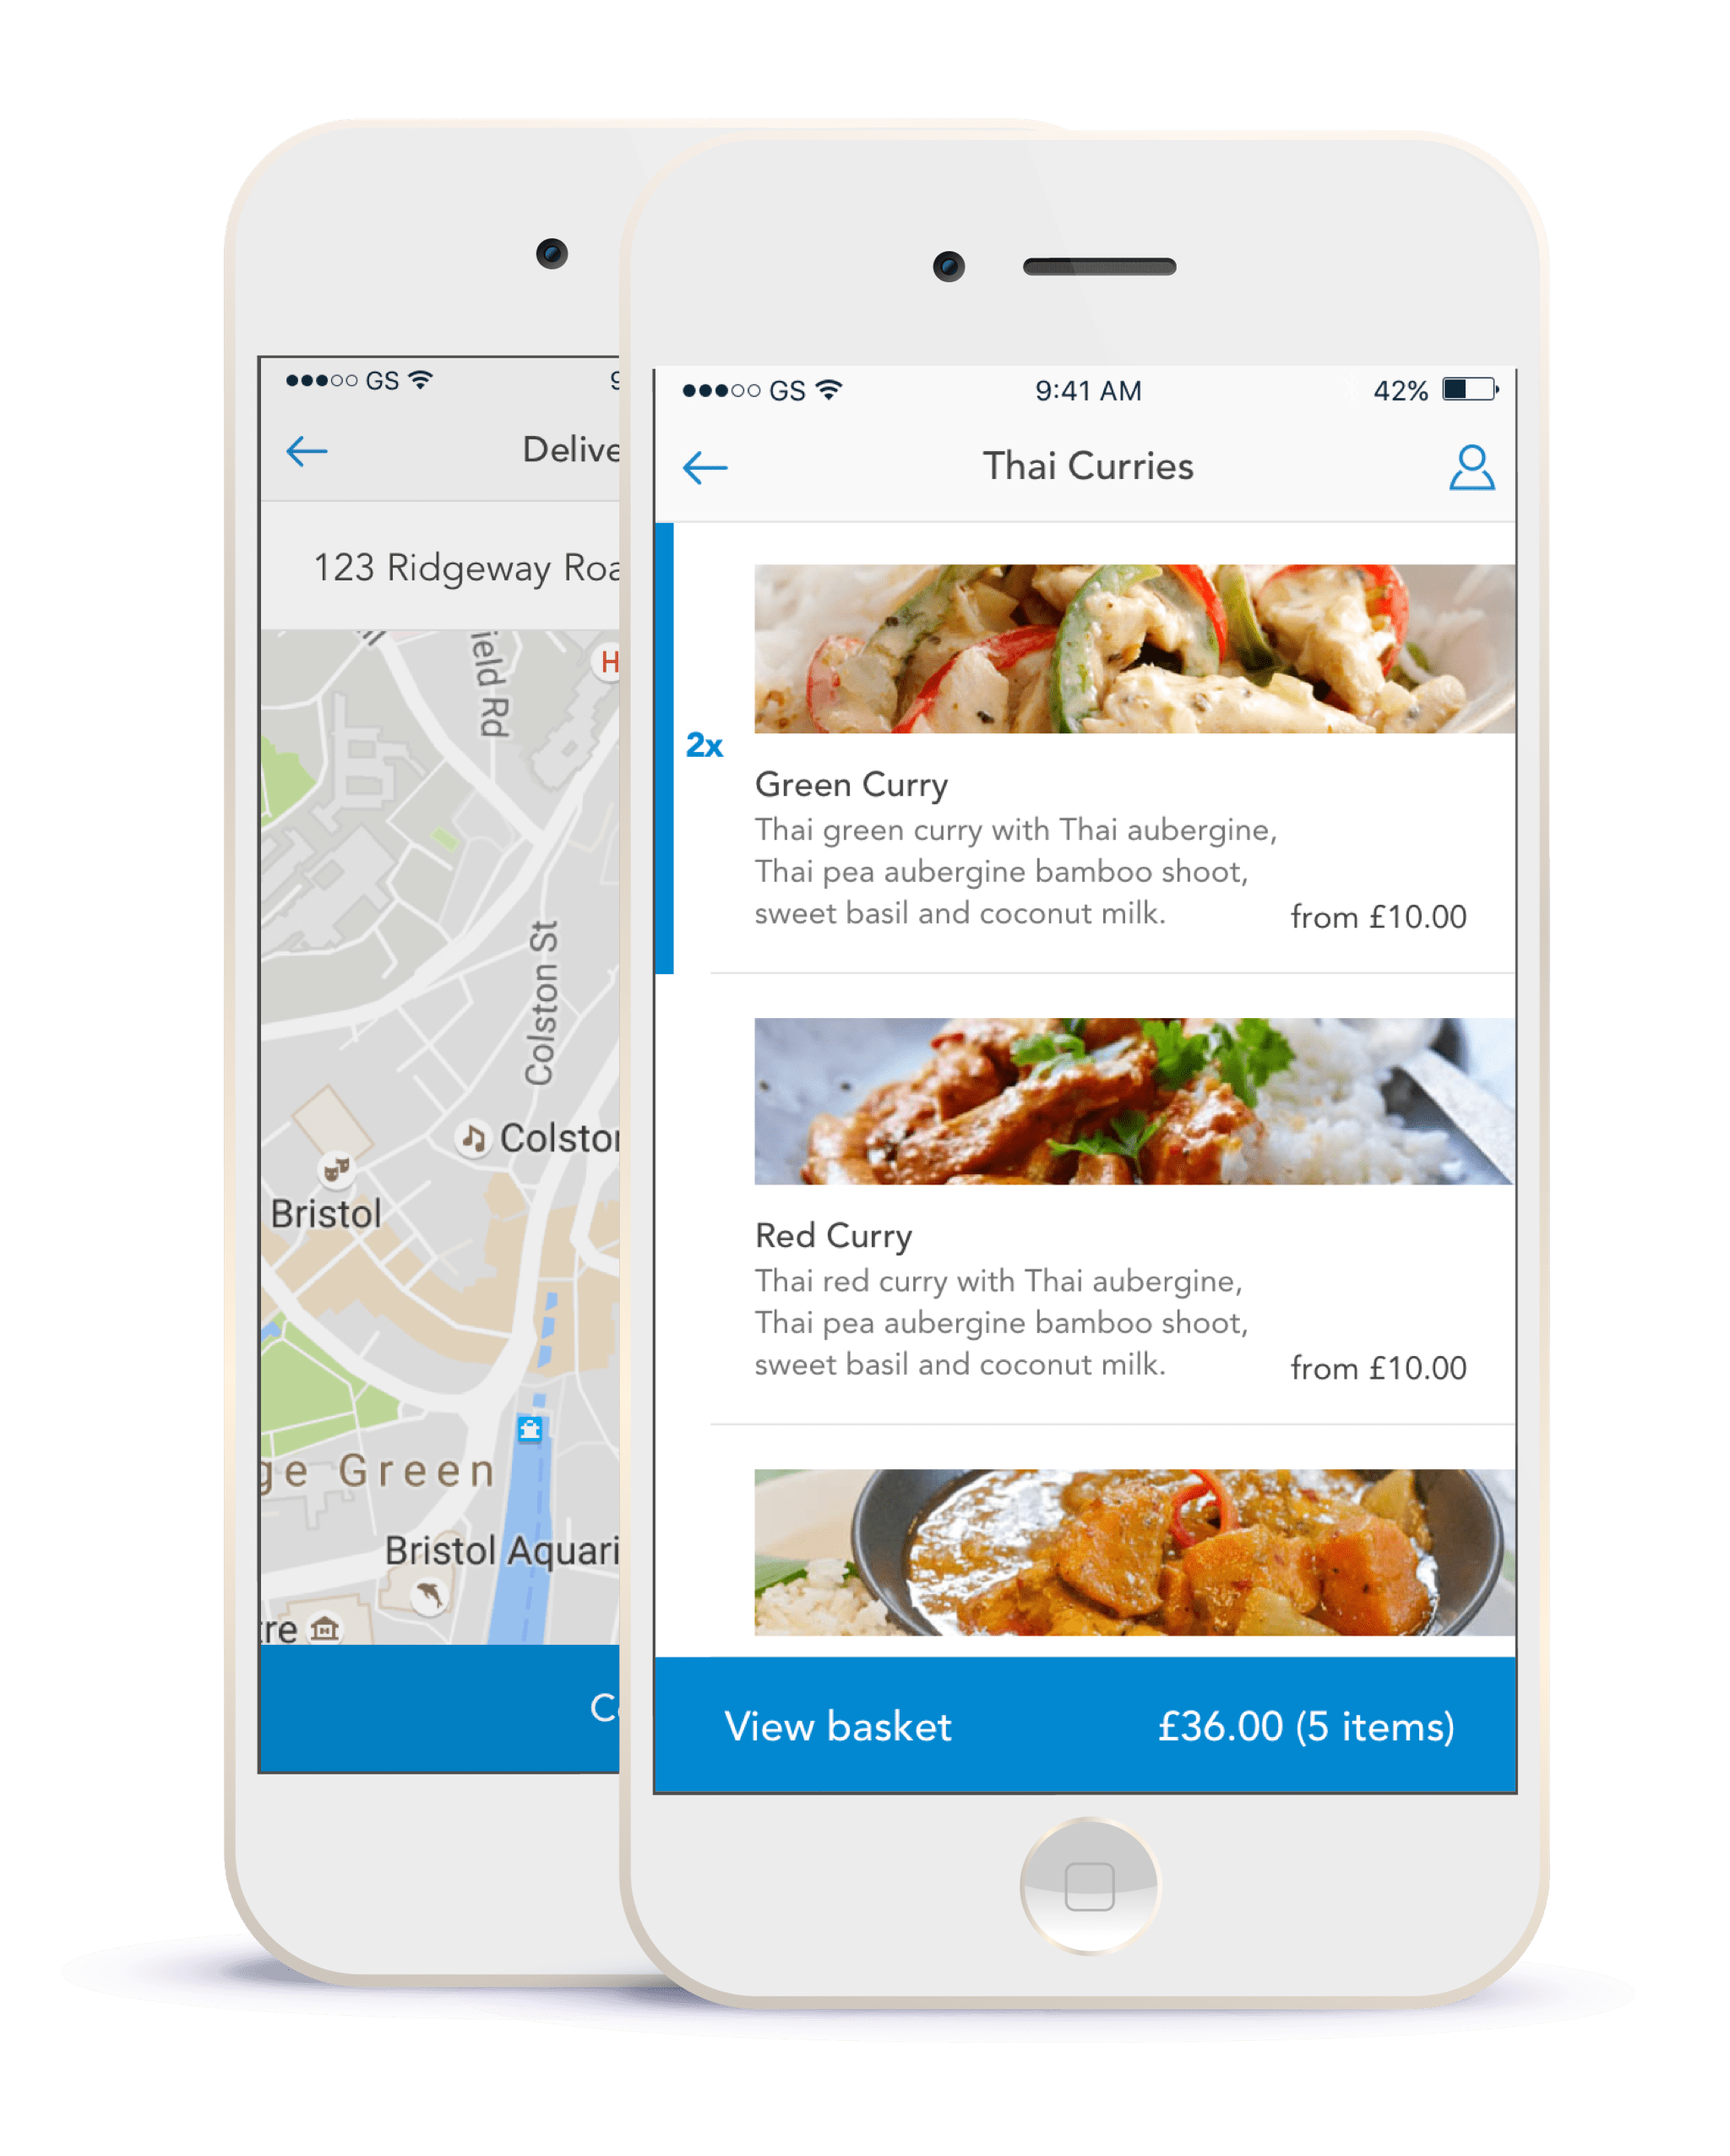 MOBILE APPS  | Preoday - Mobile and online ordering technology provider